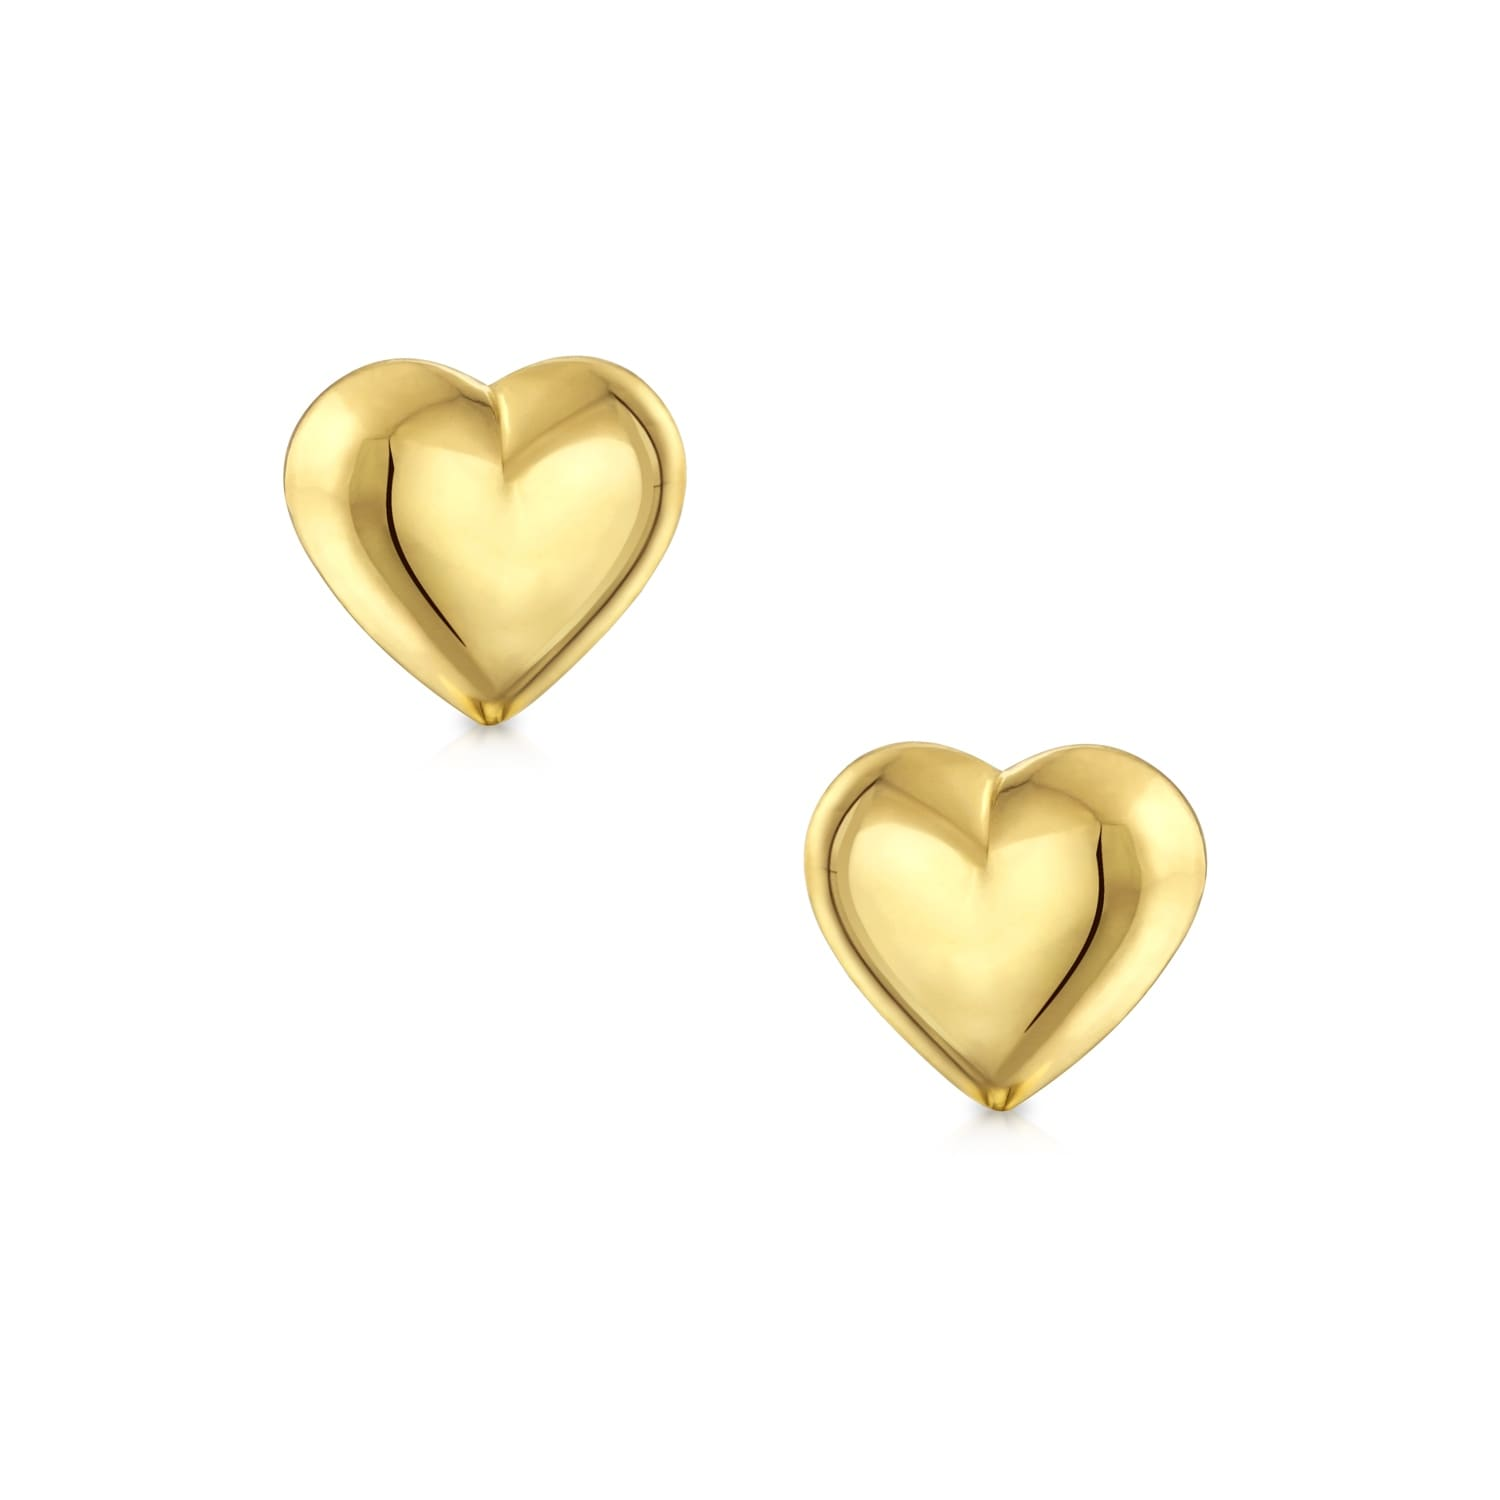 cd0e90c7e Shop Minimalist Tiny Simple Real 14K Yellow Gold Puff Heart Stud Earrings  For Women For Girlfriend 5mm - On Sale - Free Shipping On Orders Over $45  ...